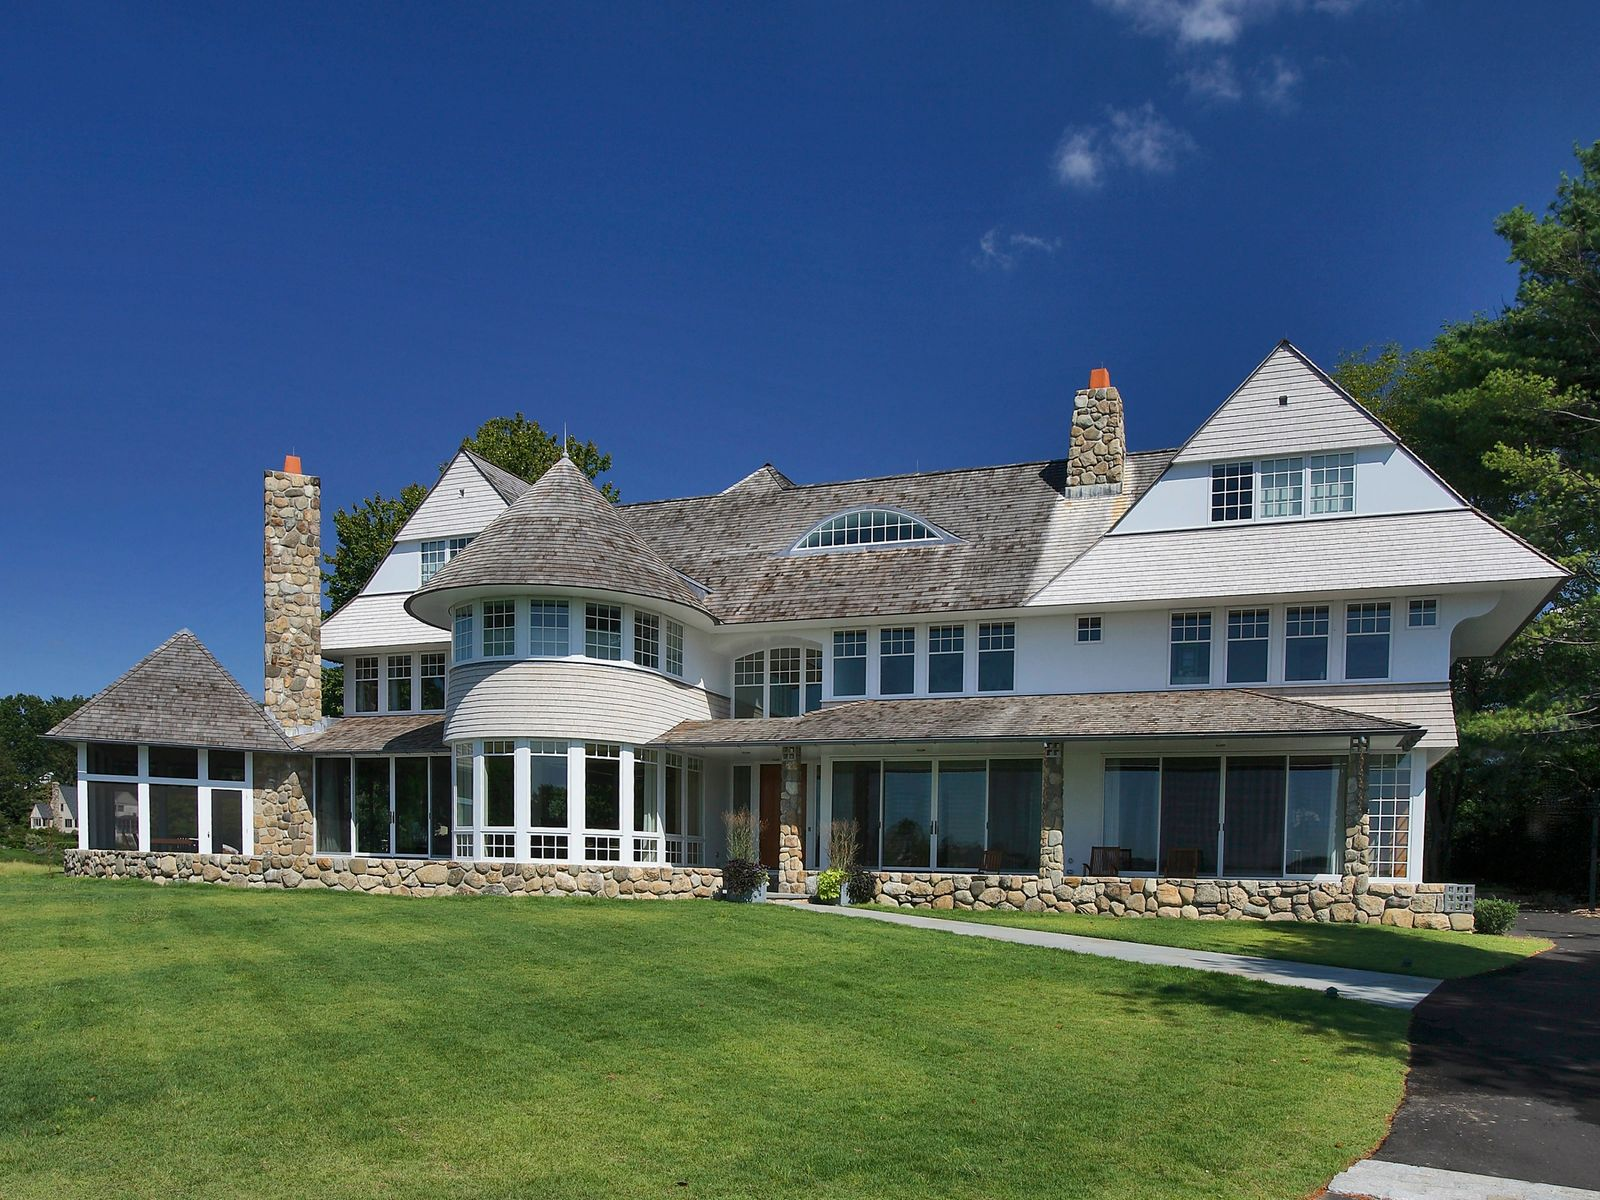 Waterfront estate in old greenwich old greenwich ct for Luxury homes for sale in greenwich ct